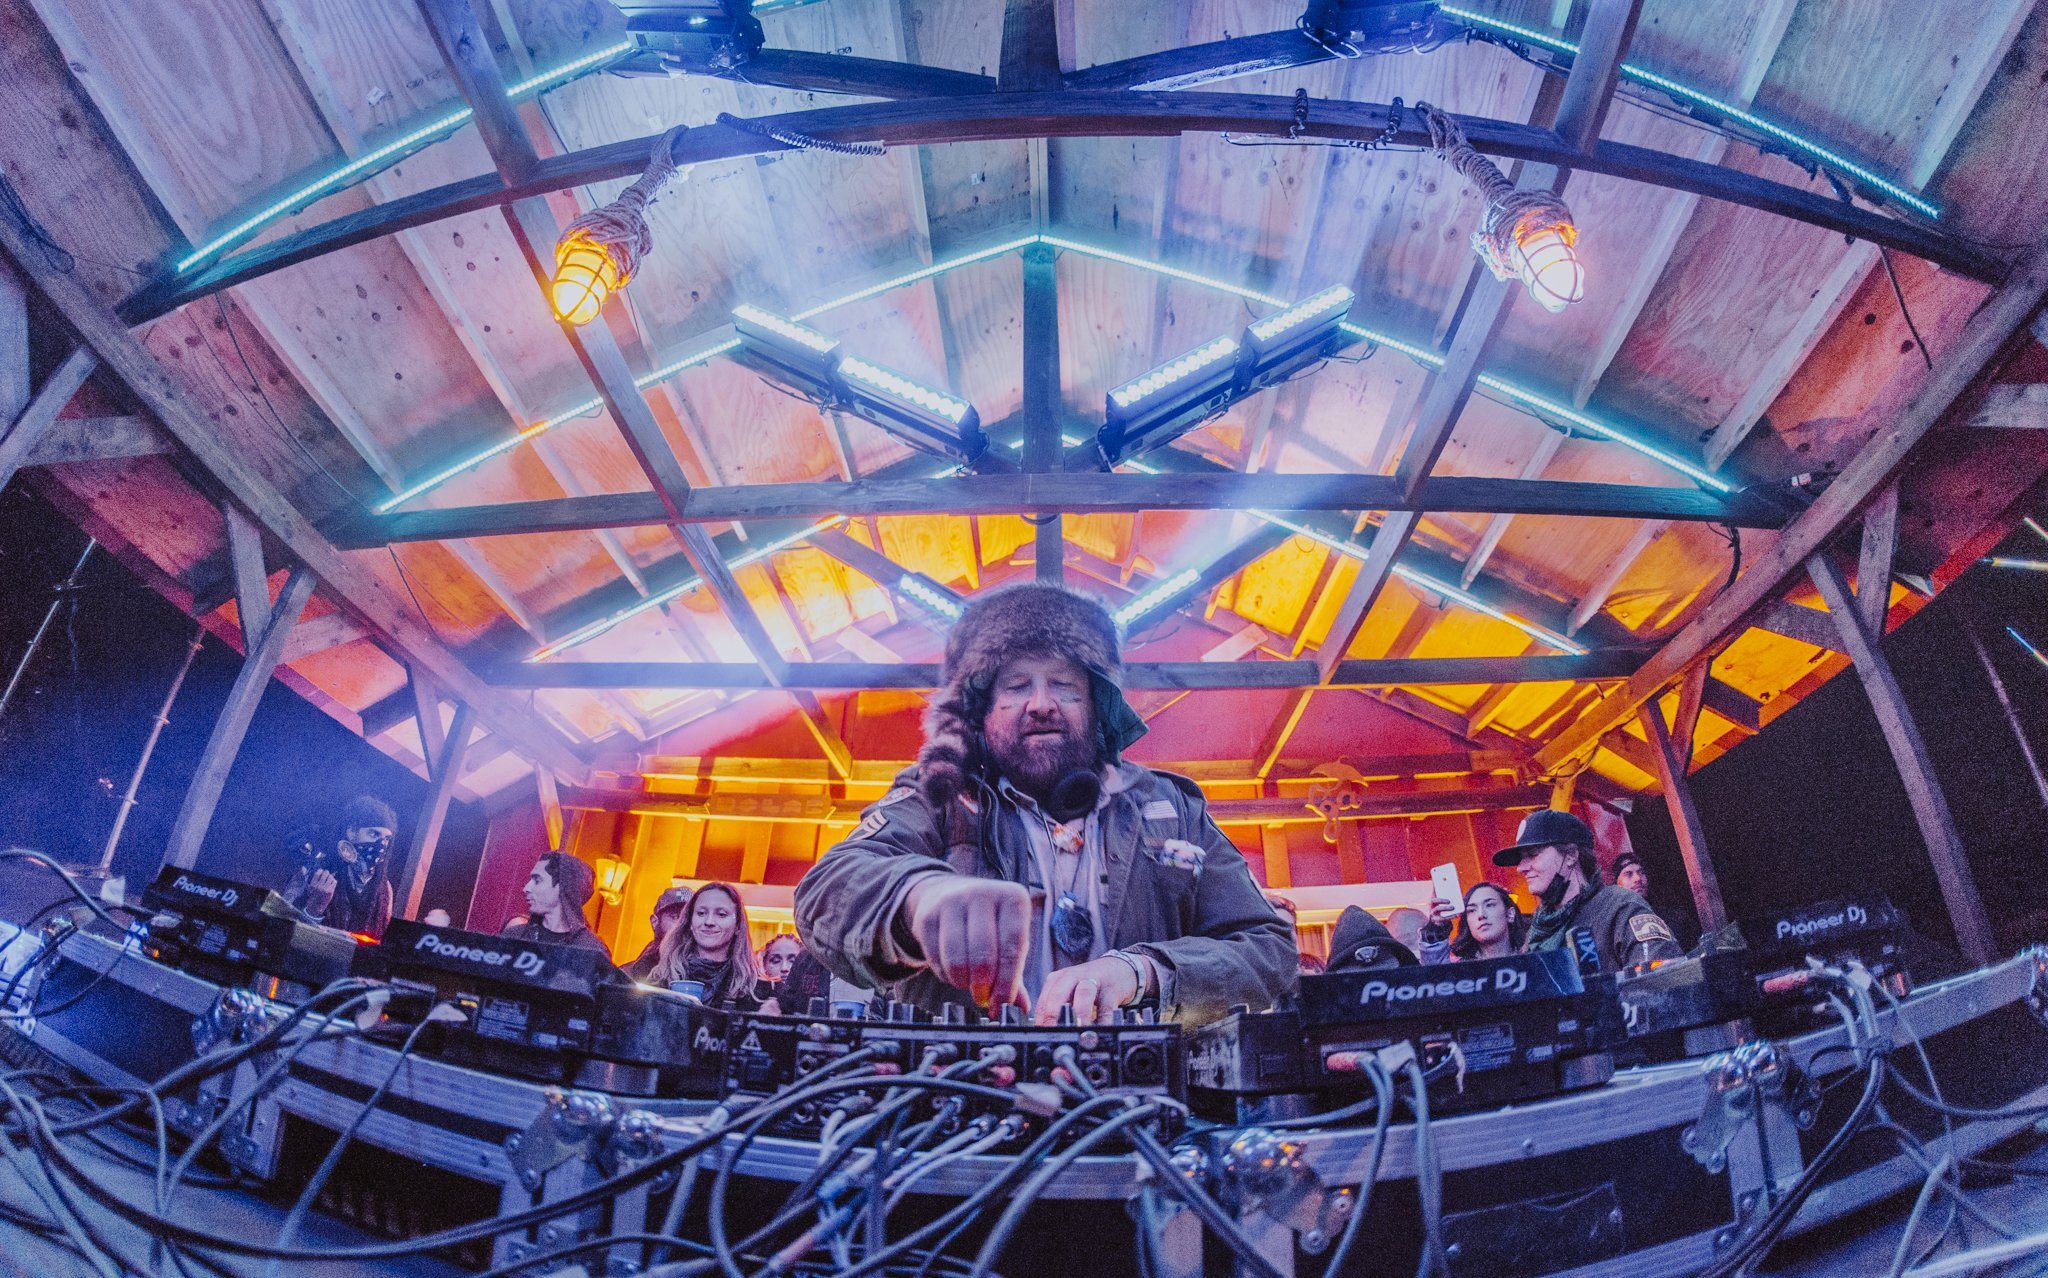 Claude VonStroke To Grace Floridian Swamp With Funk